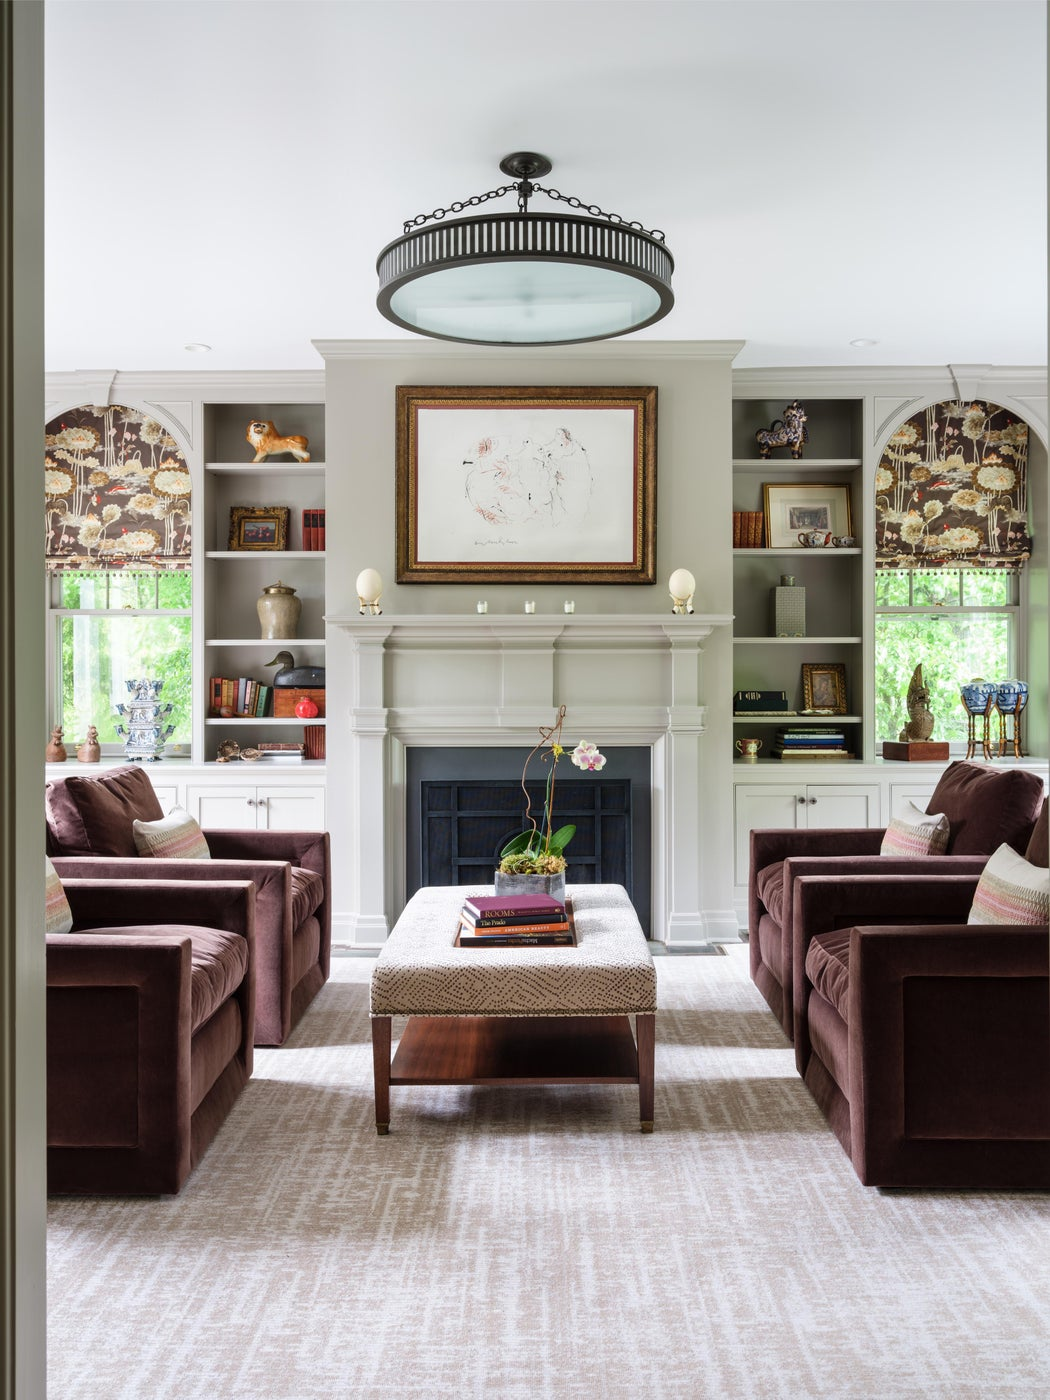 Library with velvet chairs, custom ottoman coffee table and floral print fabric.